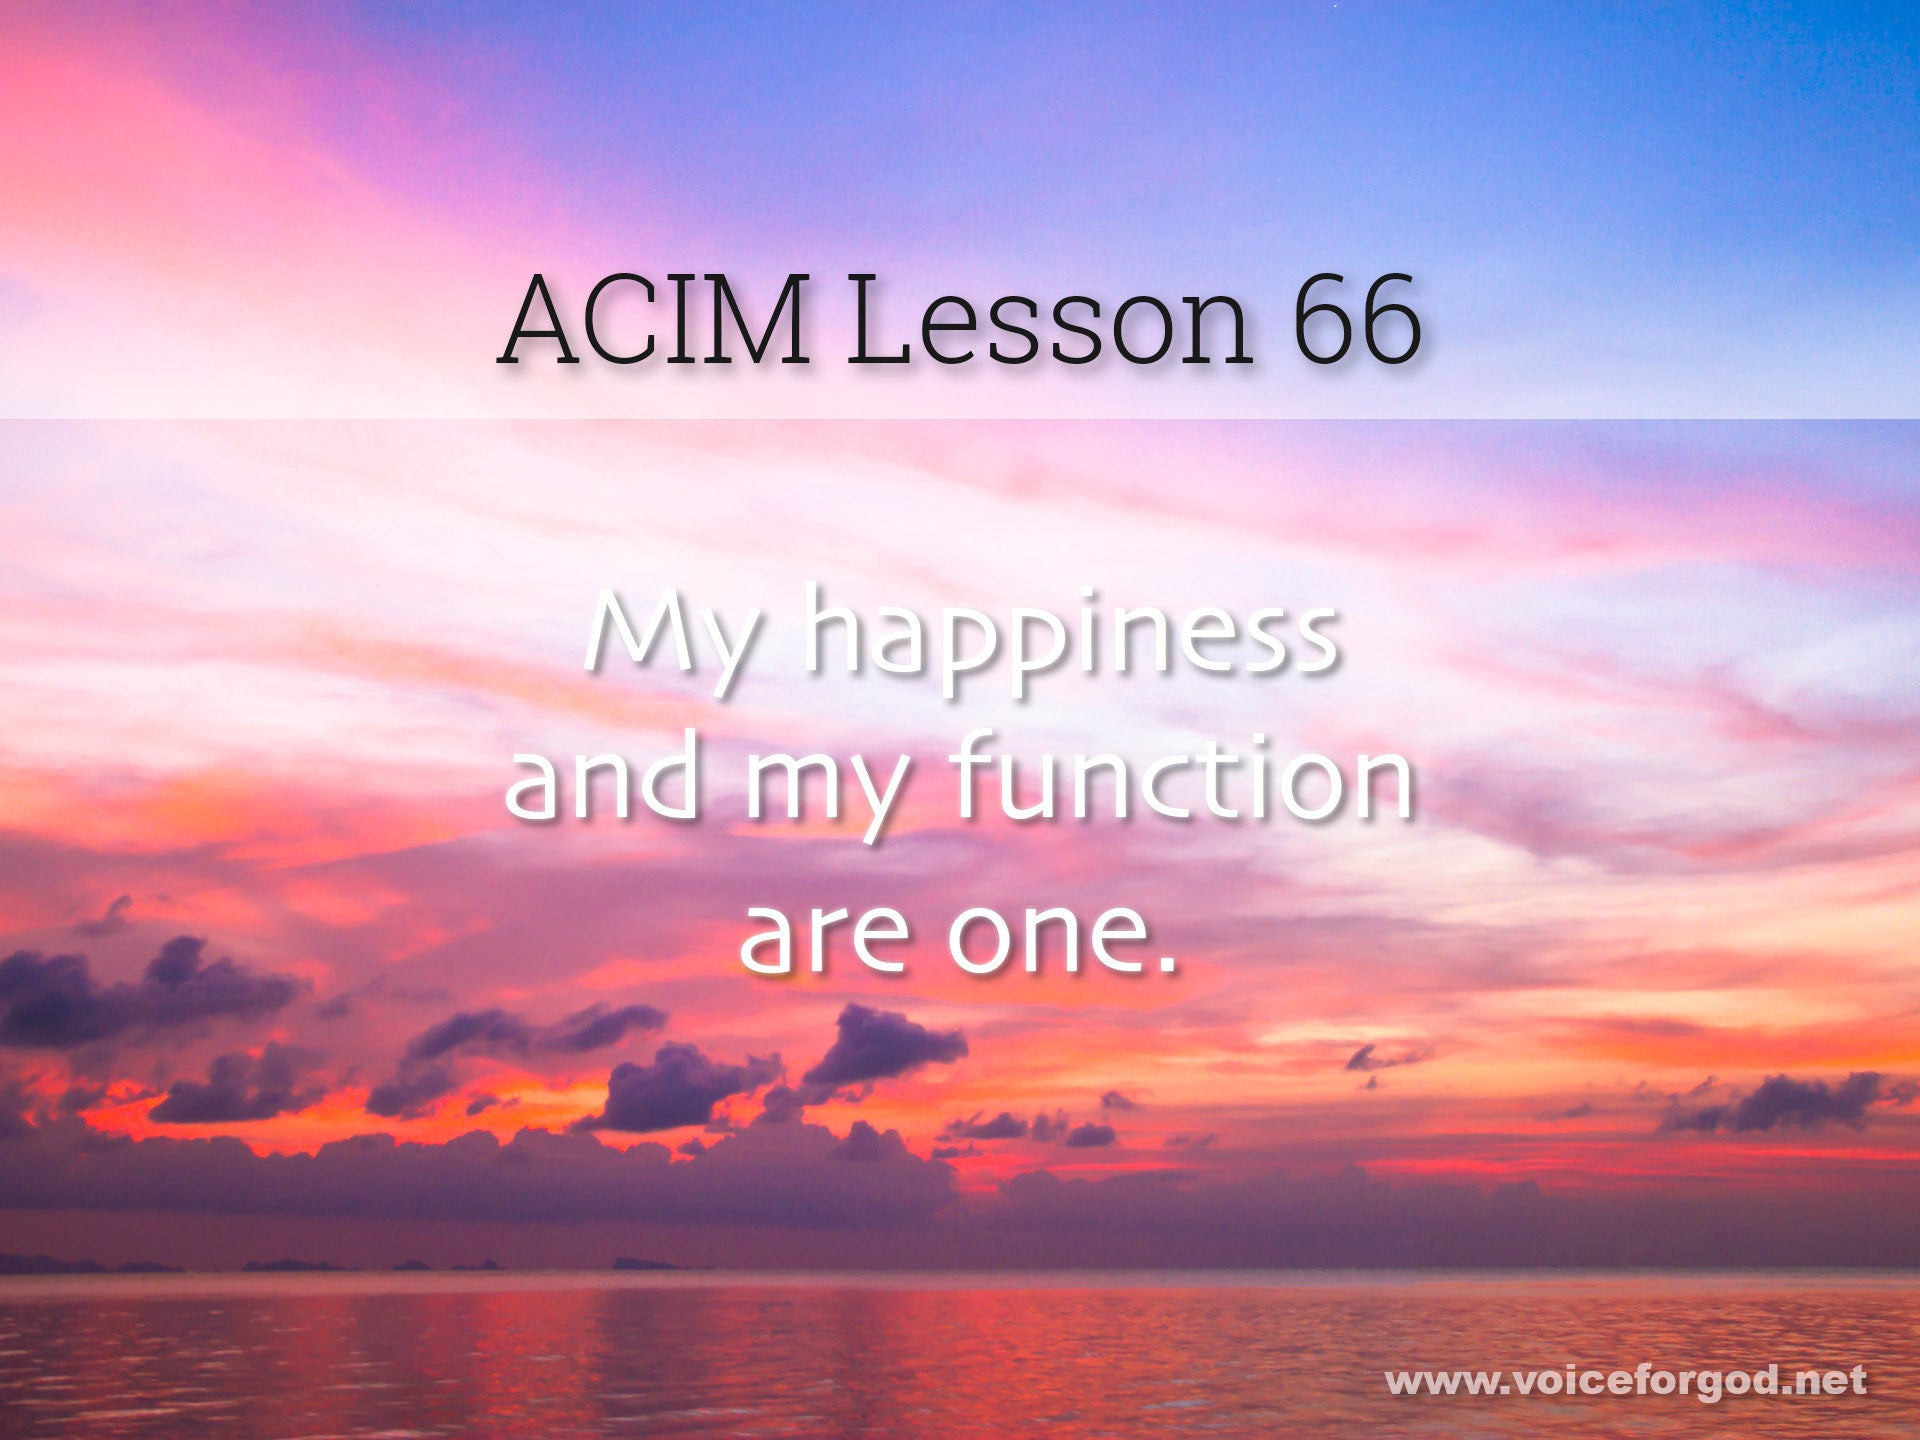 ACIM Lesson 66 - A Course in Miracles Workbook Lesson 66